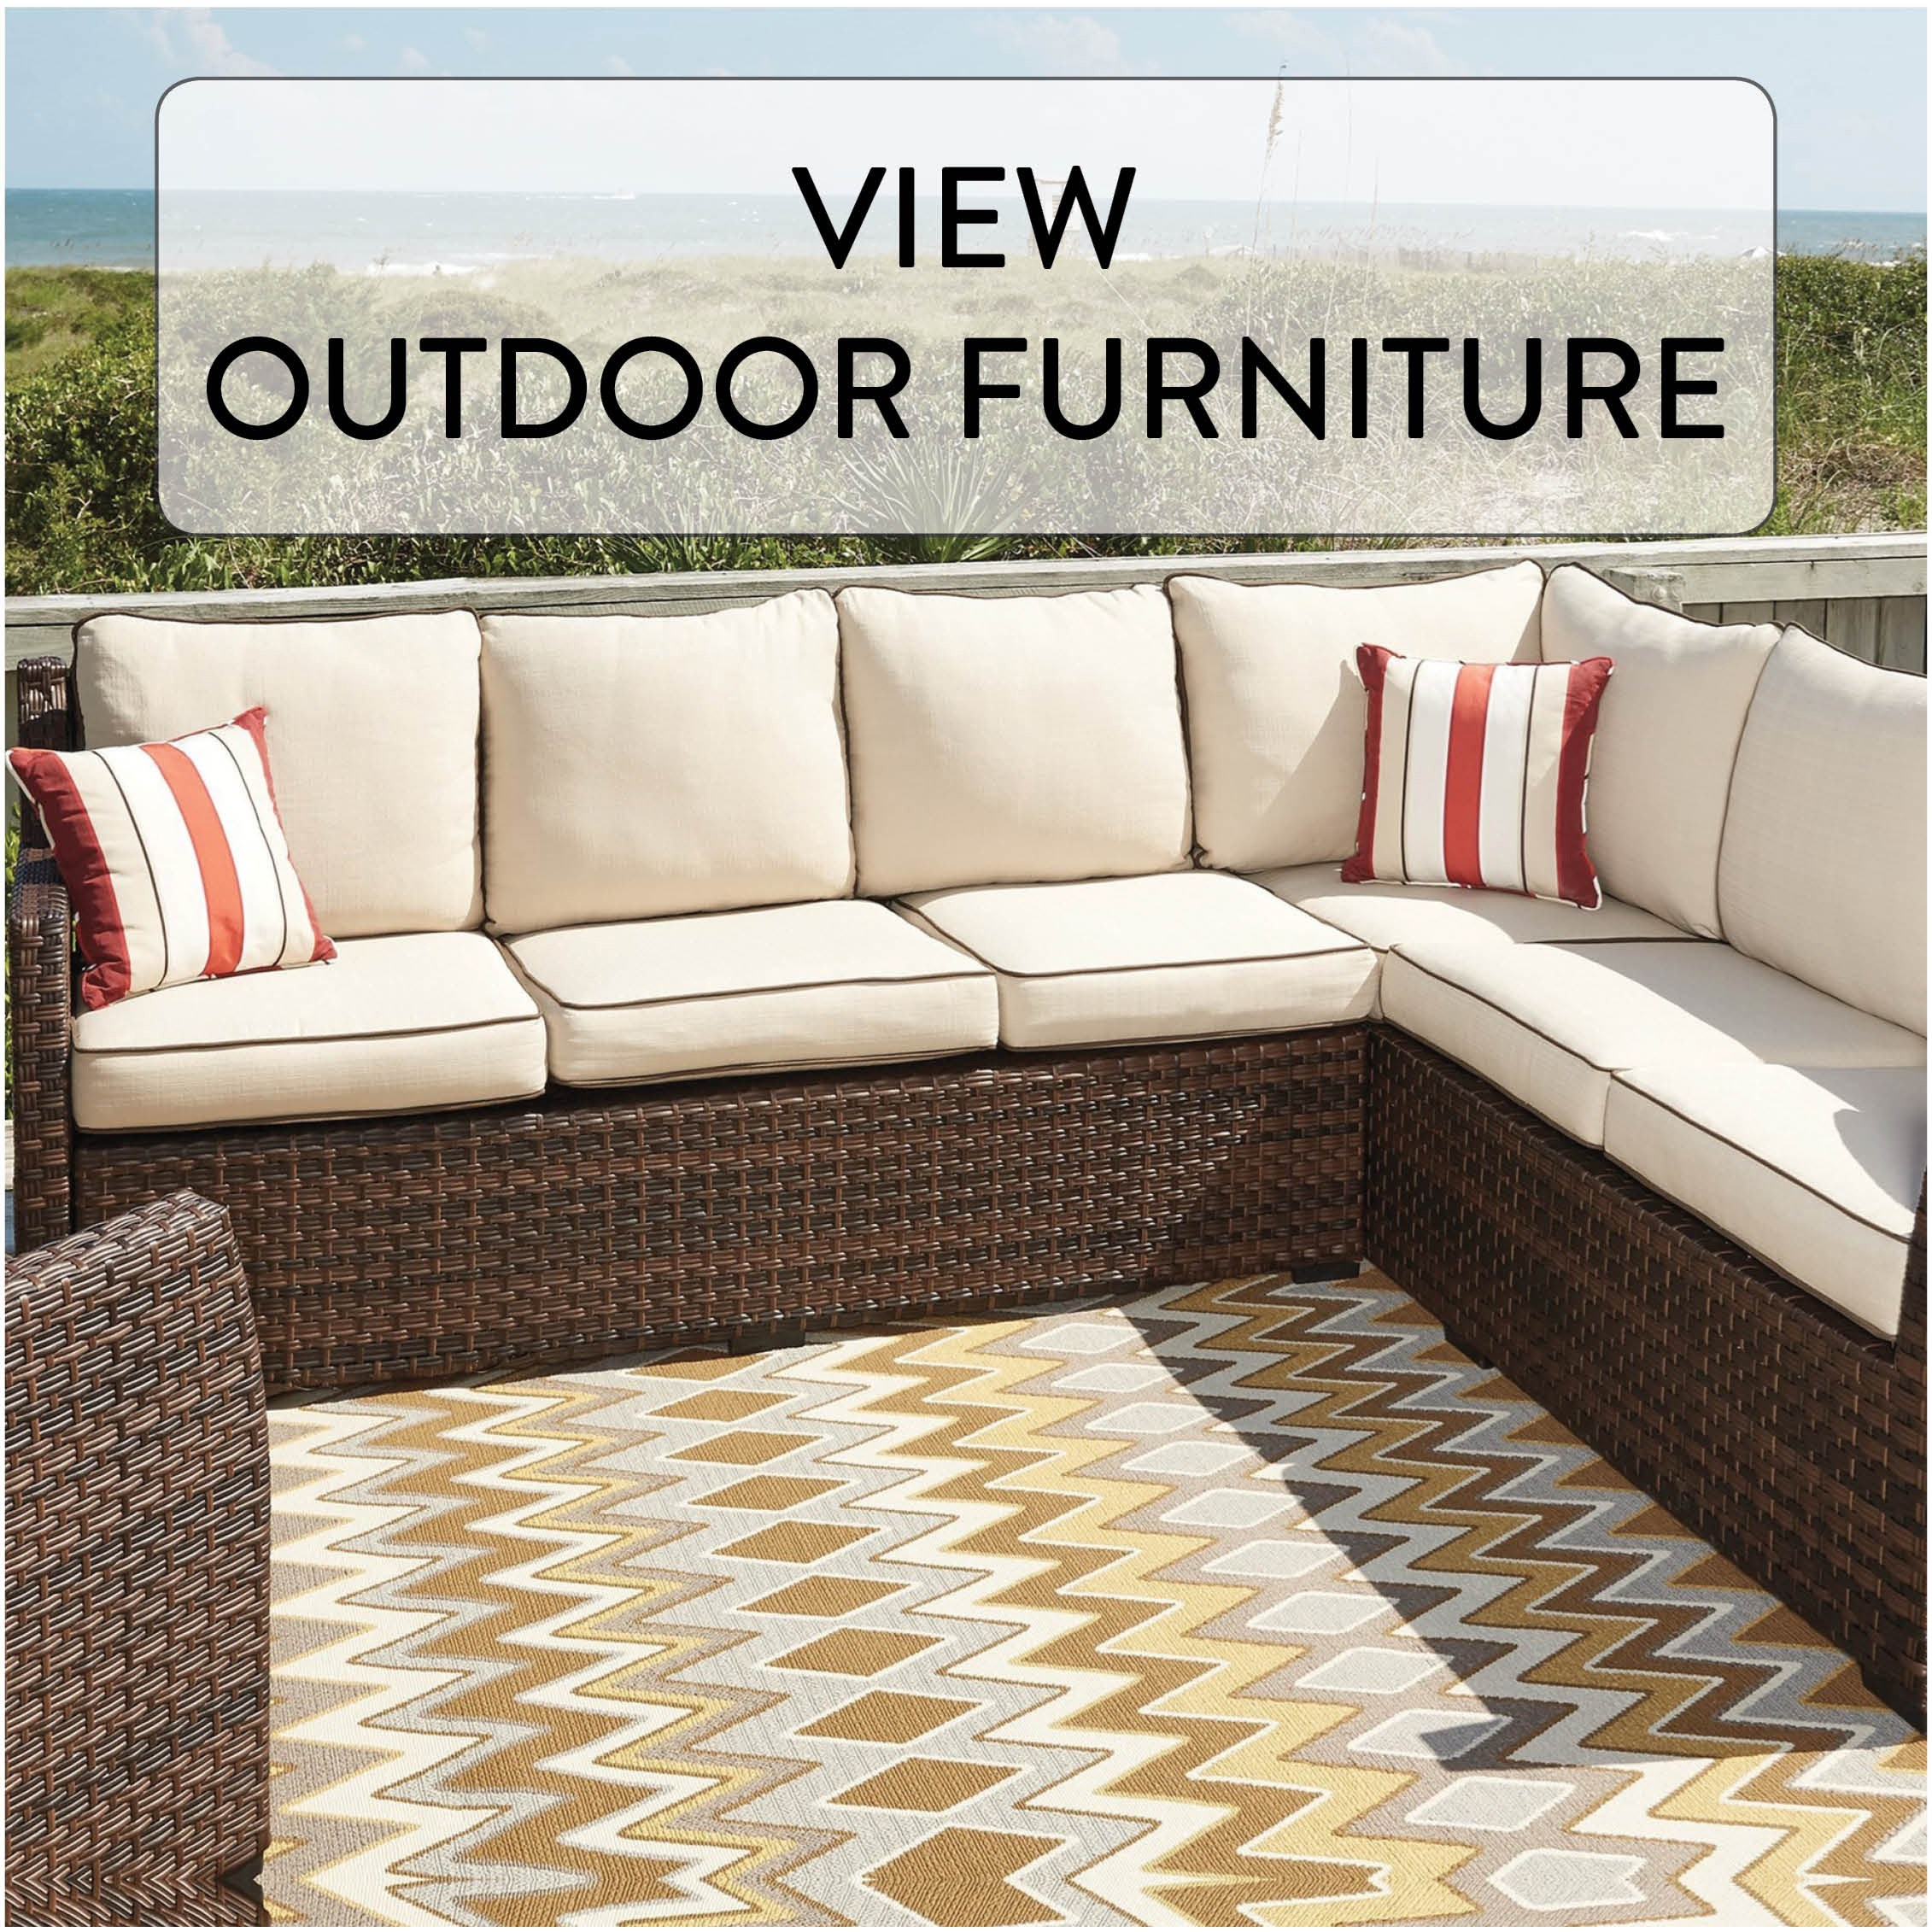 Outdoor Furniture at Rooms and Rest